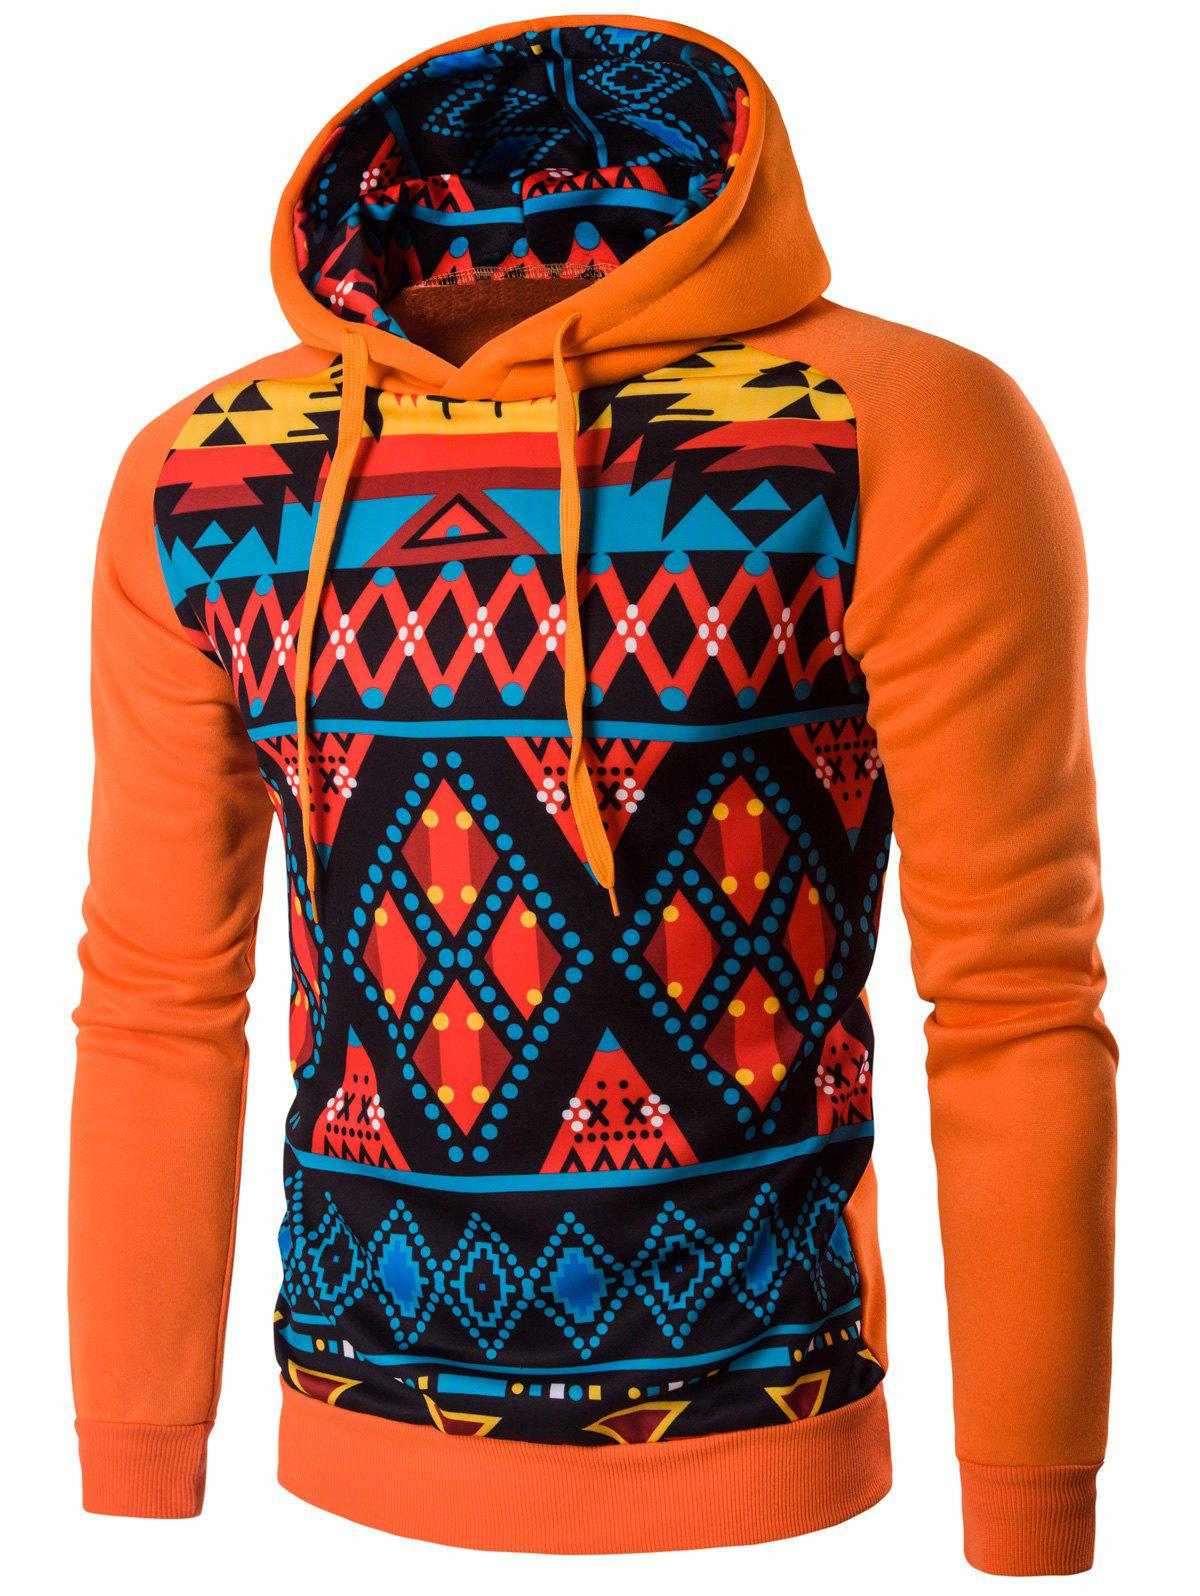 Geometric Sweatshirt à capuche Cartoon - Douce Orange M